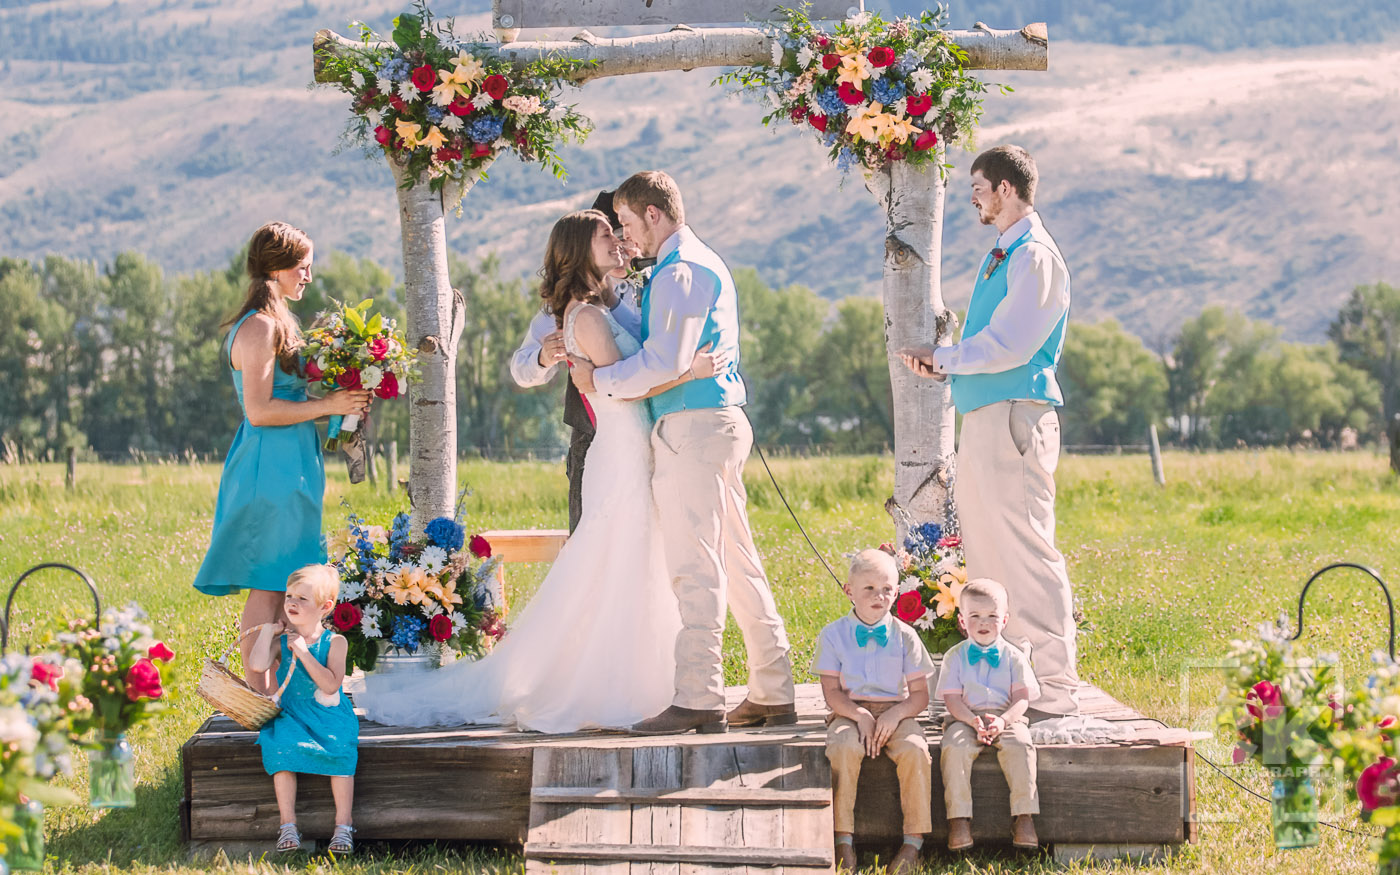 Chris Kryzanek Photography - Ceremony first kiss